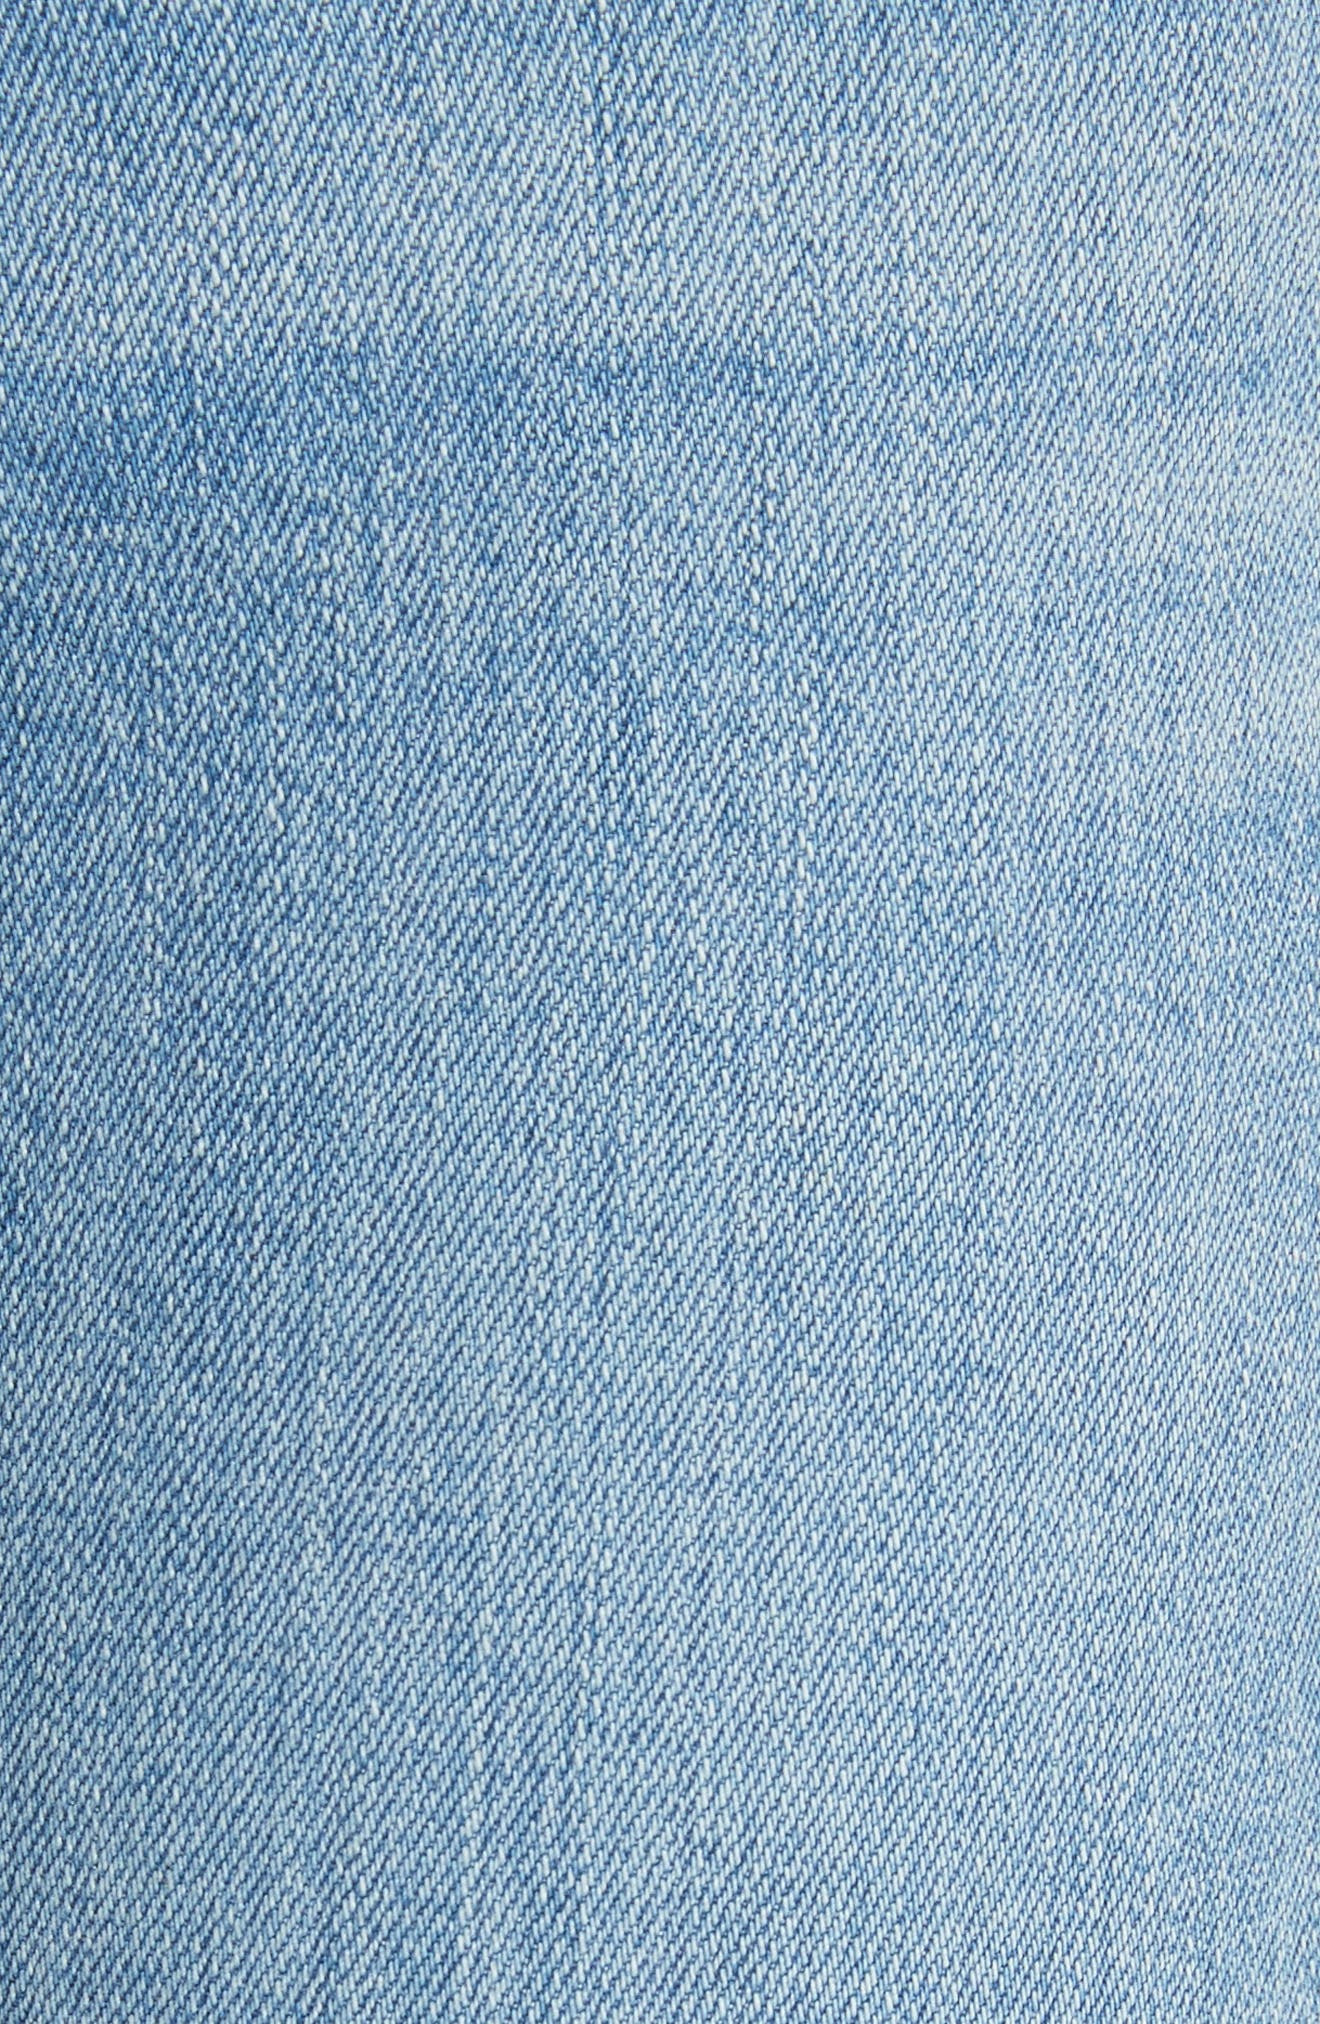 Ripped Ankle Skinny Jeans,                             Alternate thumbnail 5, color,                             425